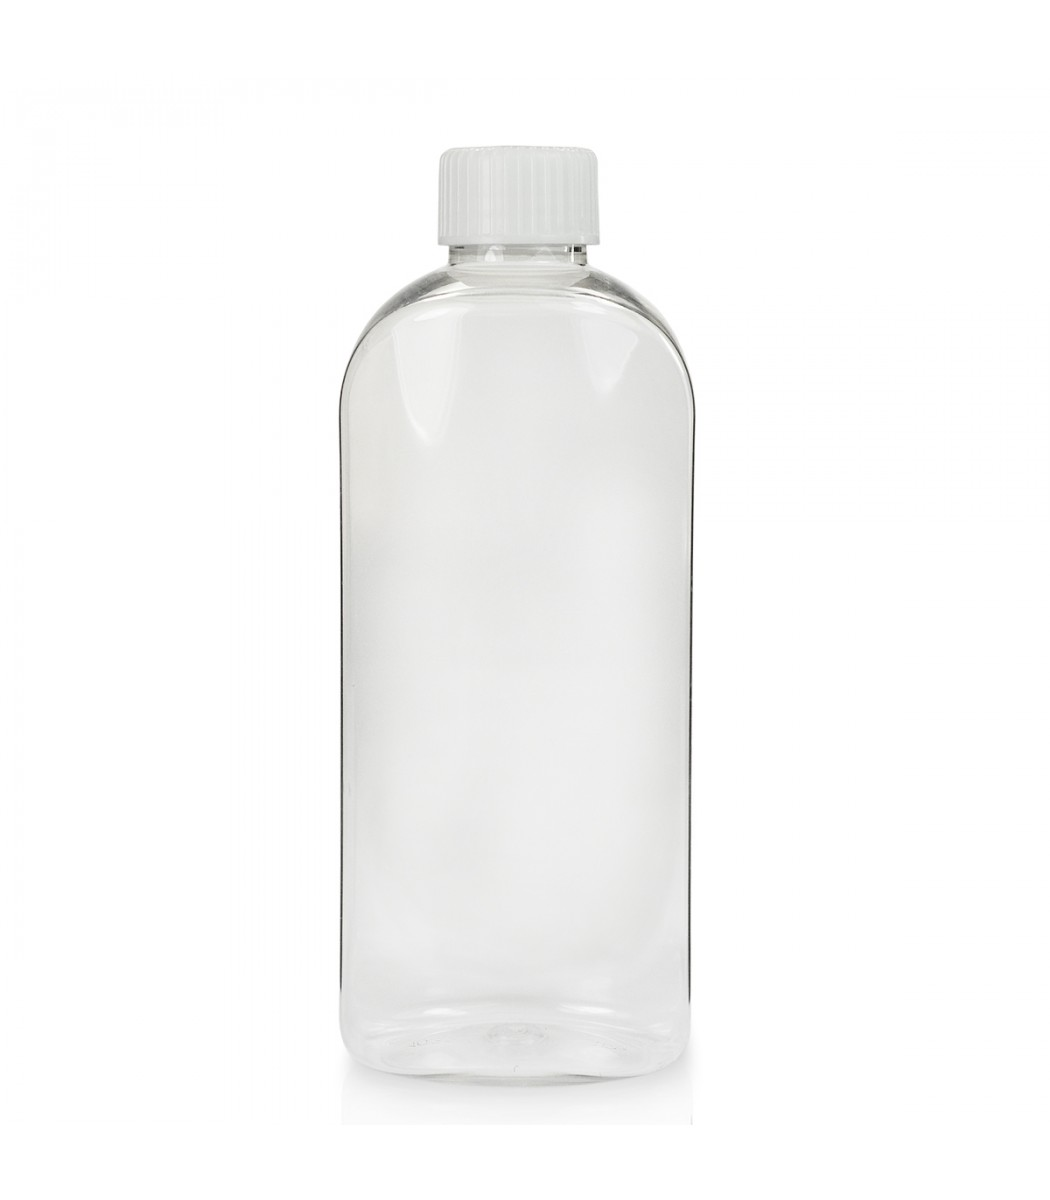 250ml clear oval bottle cap for What to do with empty plastic bottles